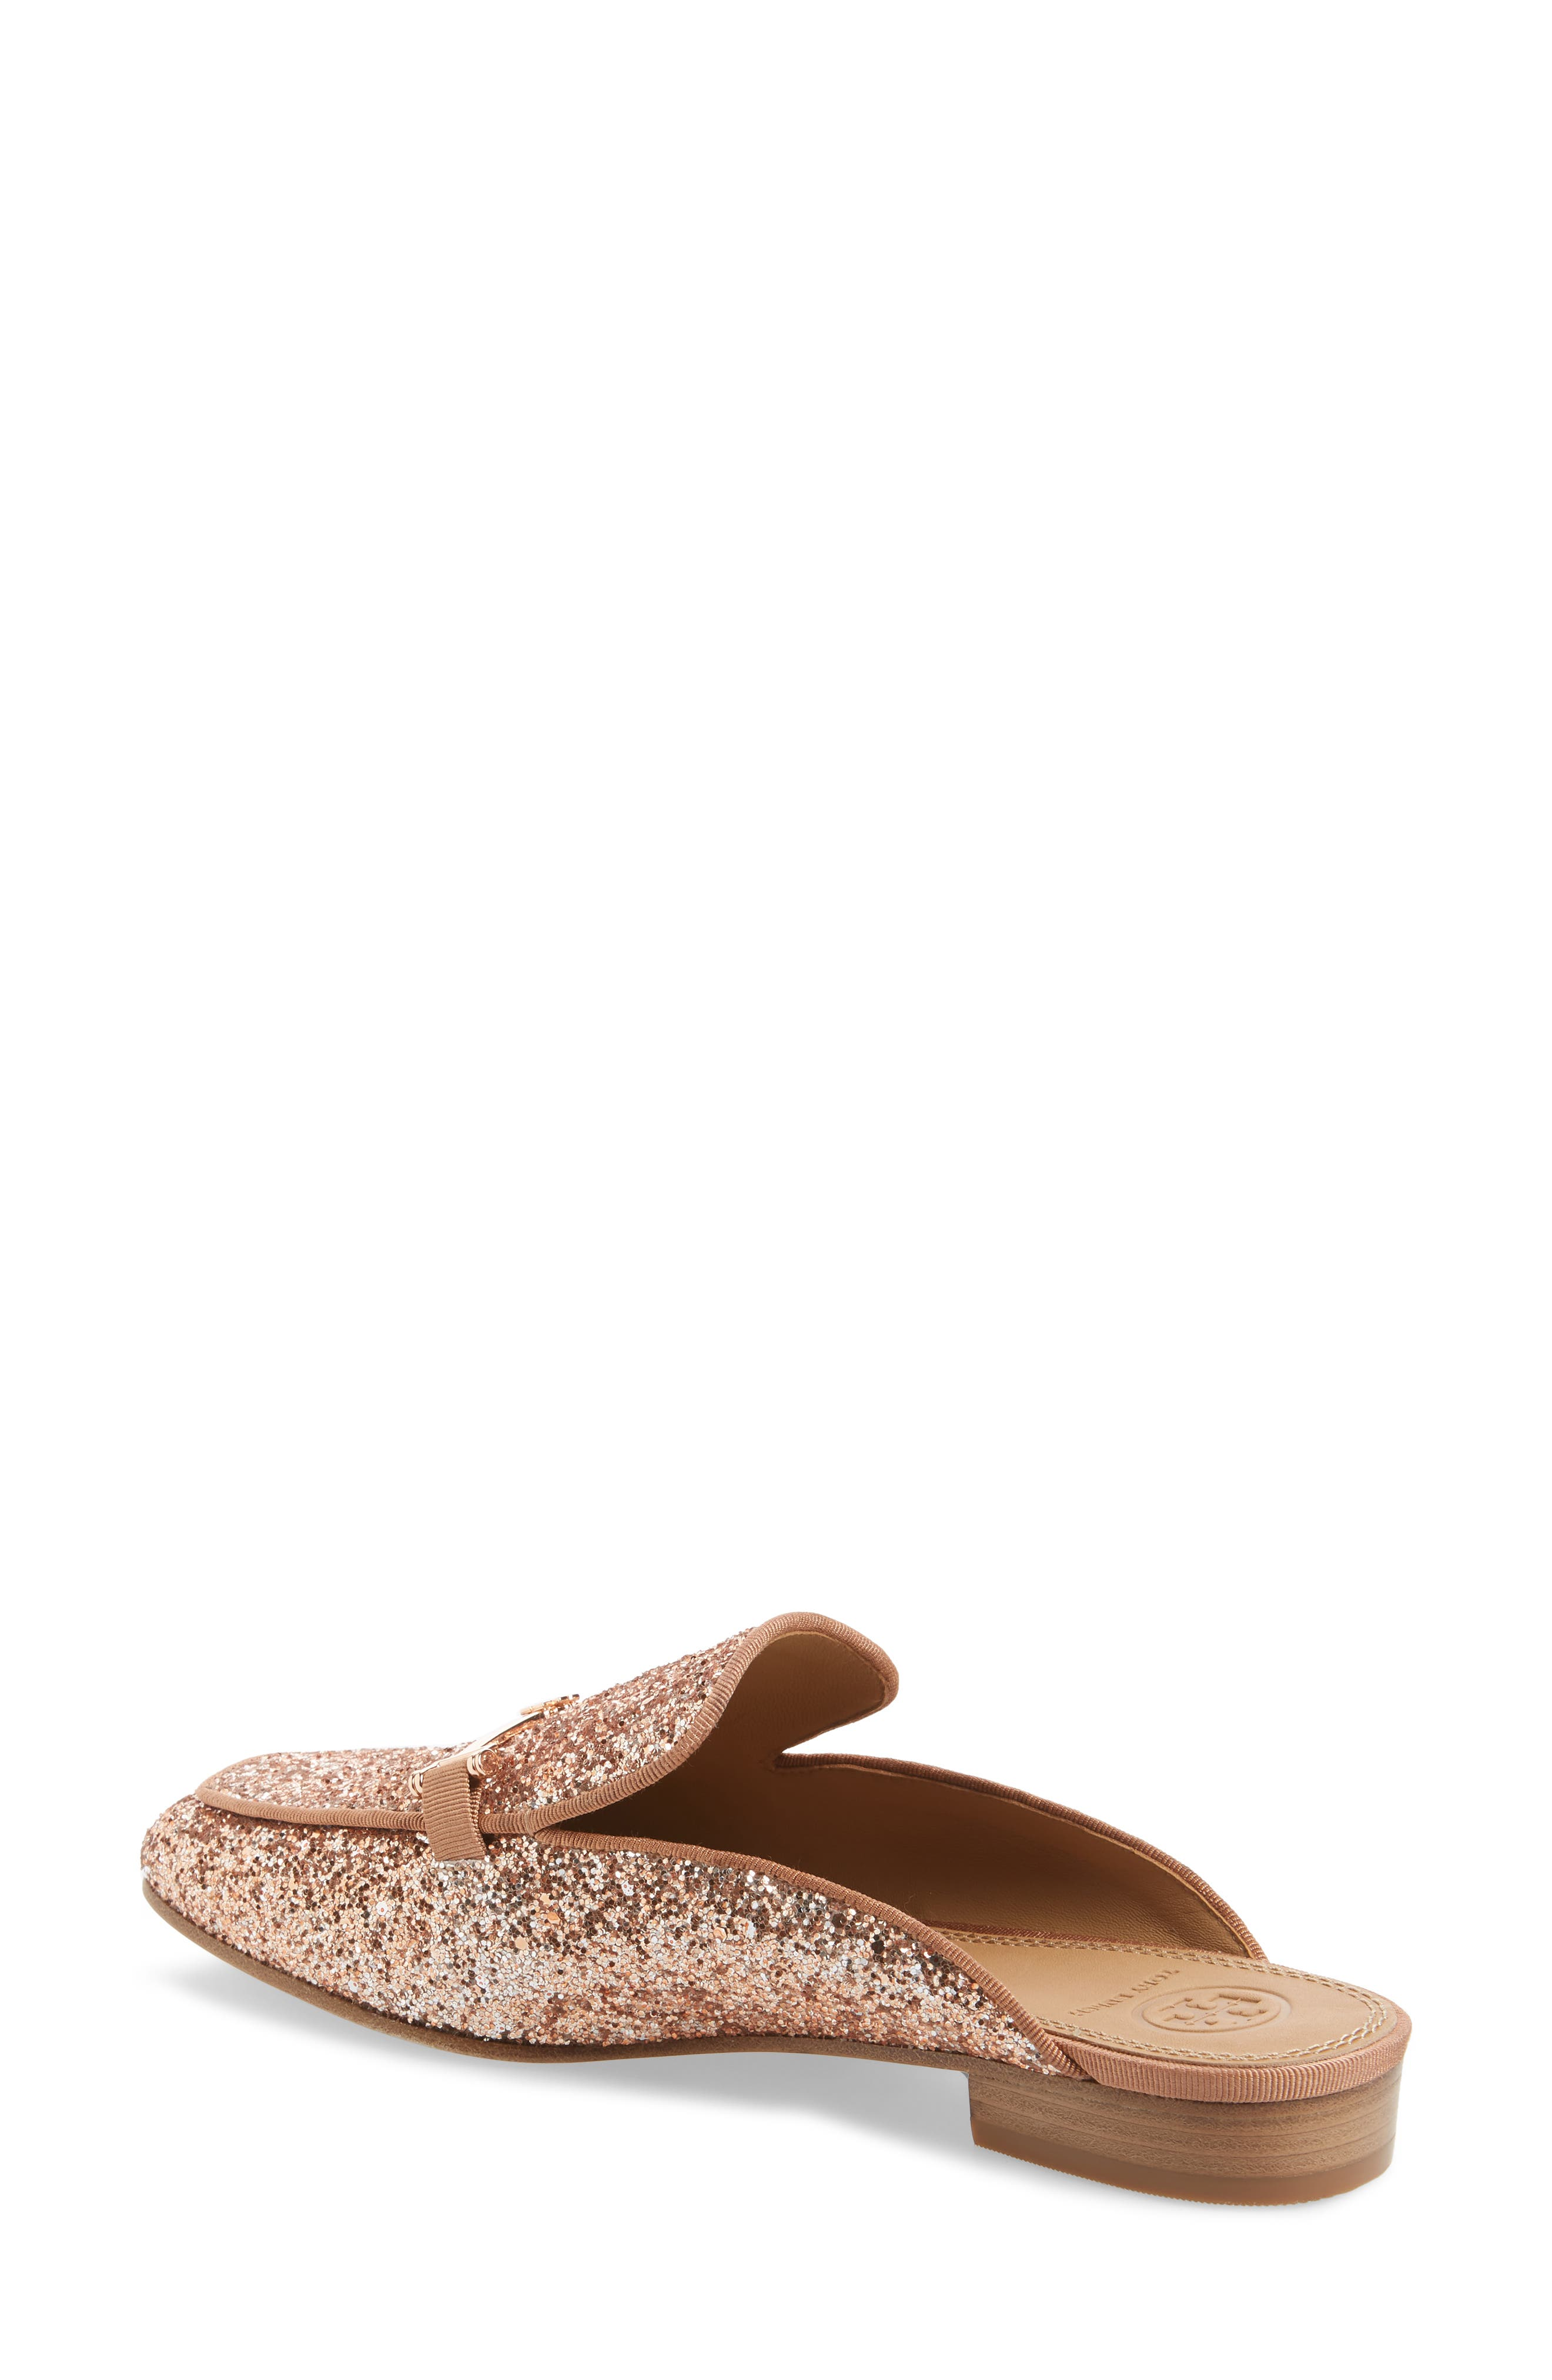 Amelia Loafer Mule,                             Alternate thumbnail 2, color,                             Rose Gold/ Rose Gold